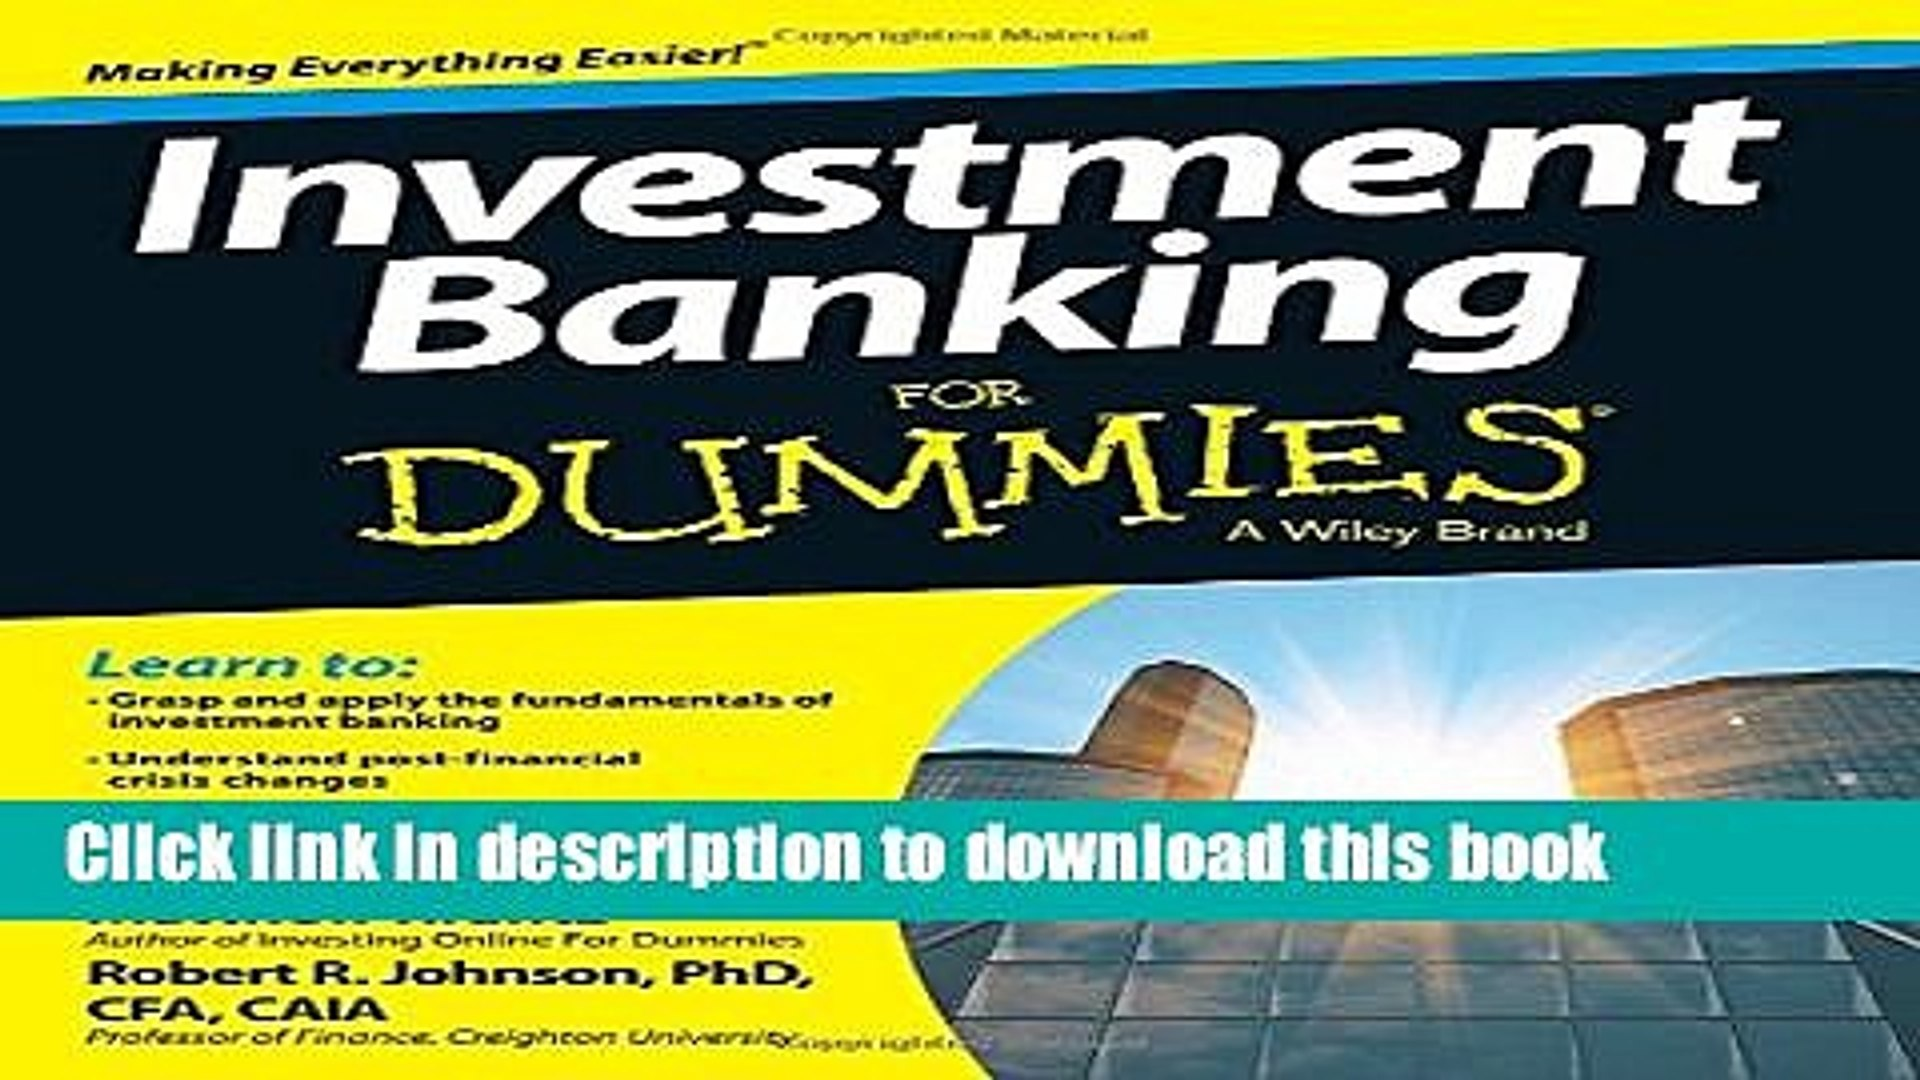 [Popular] Investment Banking For Dummies Paperback Online